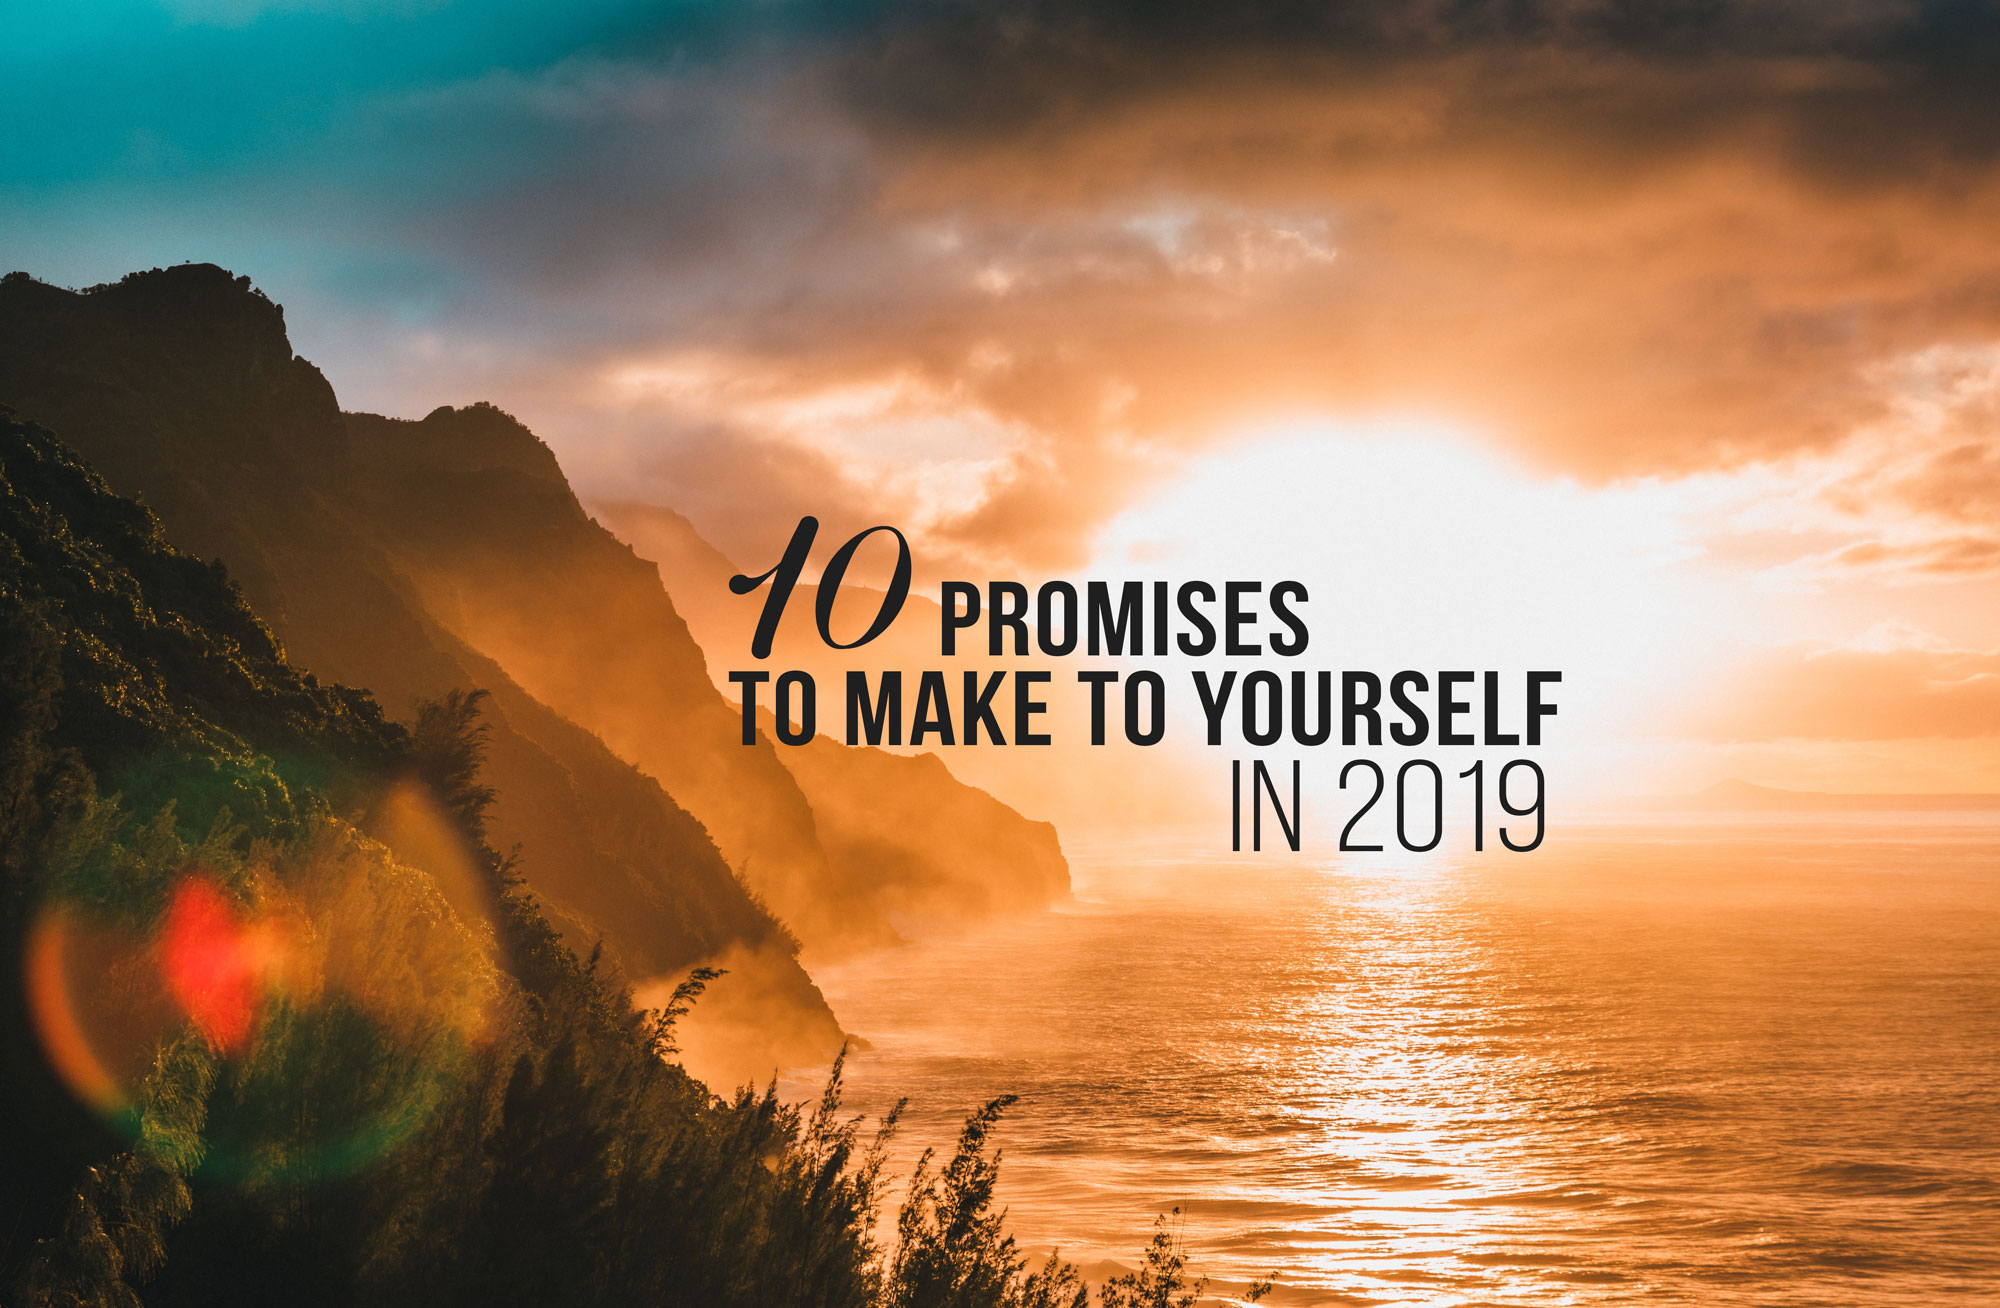 10 Promise to Make to Yourself in 2019